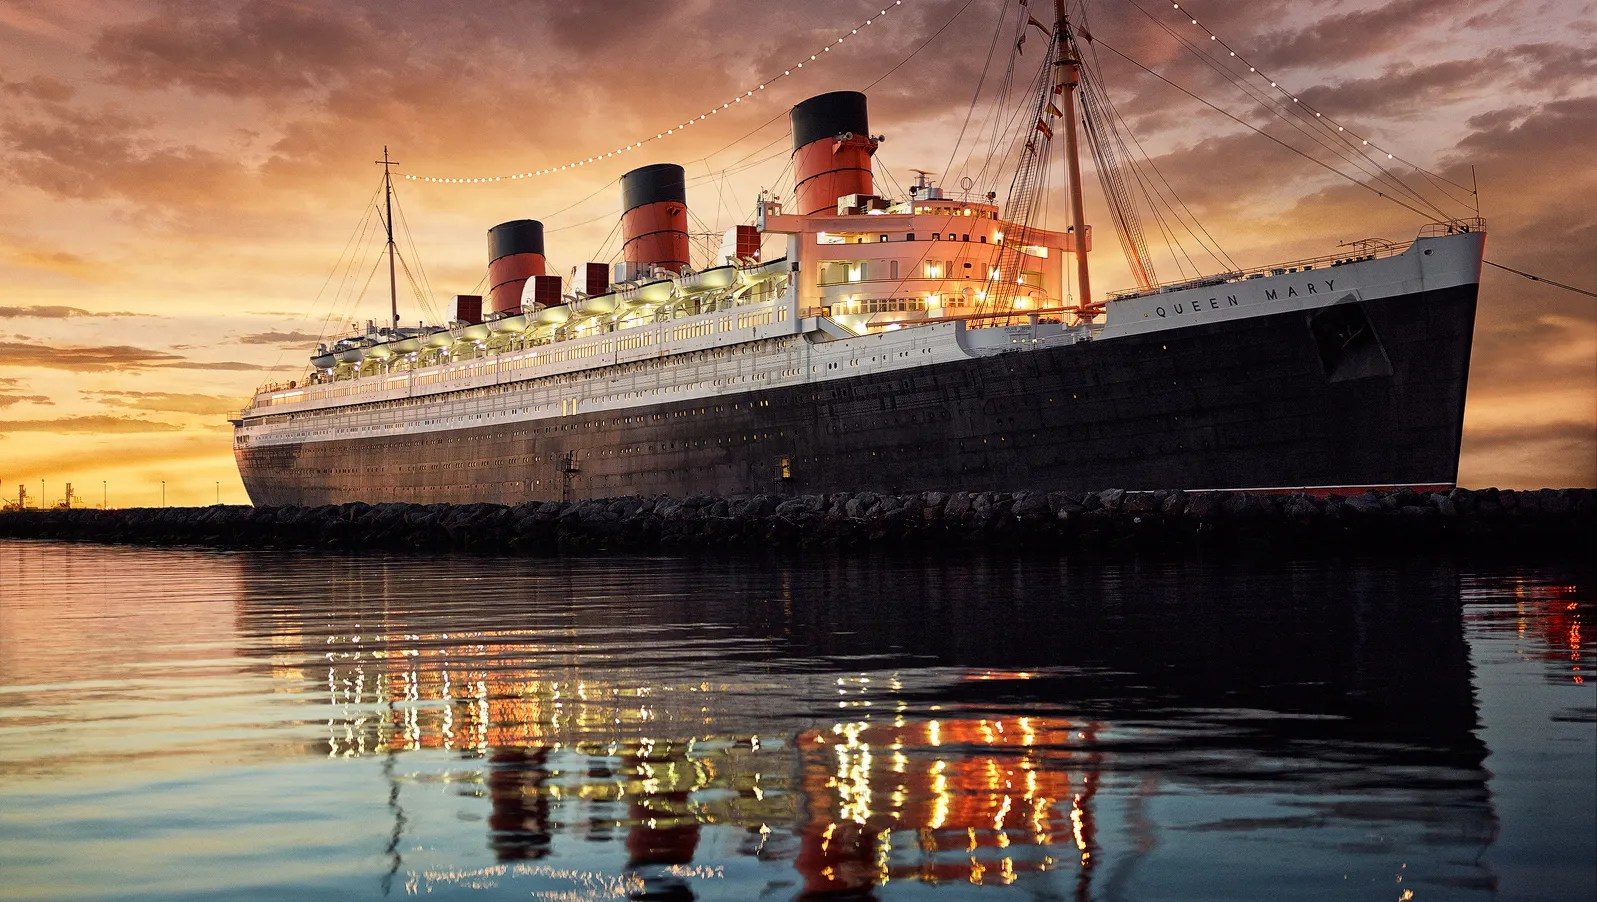 Queen Mary Qe2 Ss United States Tour Of Iconic